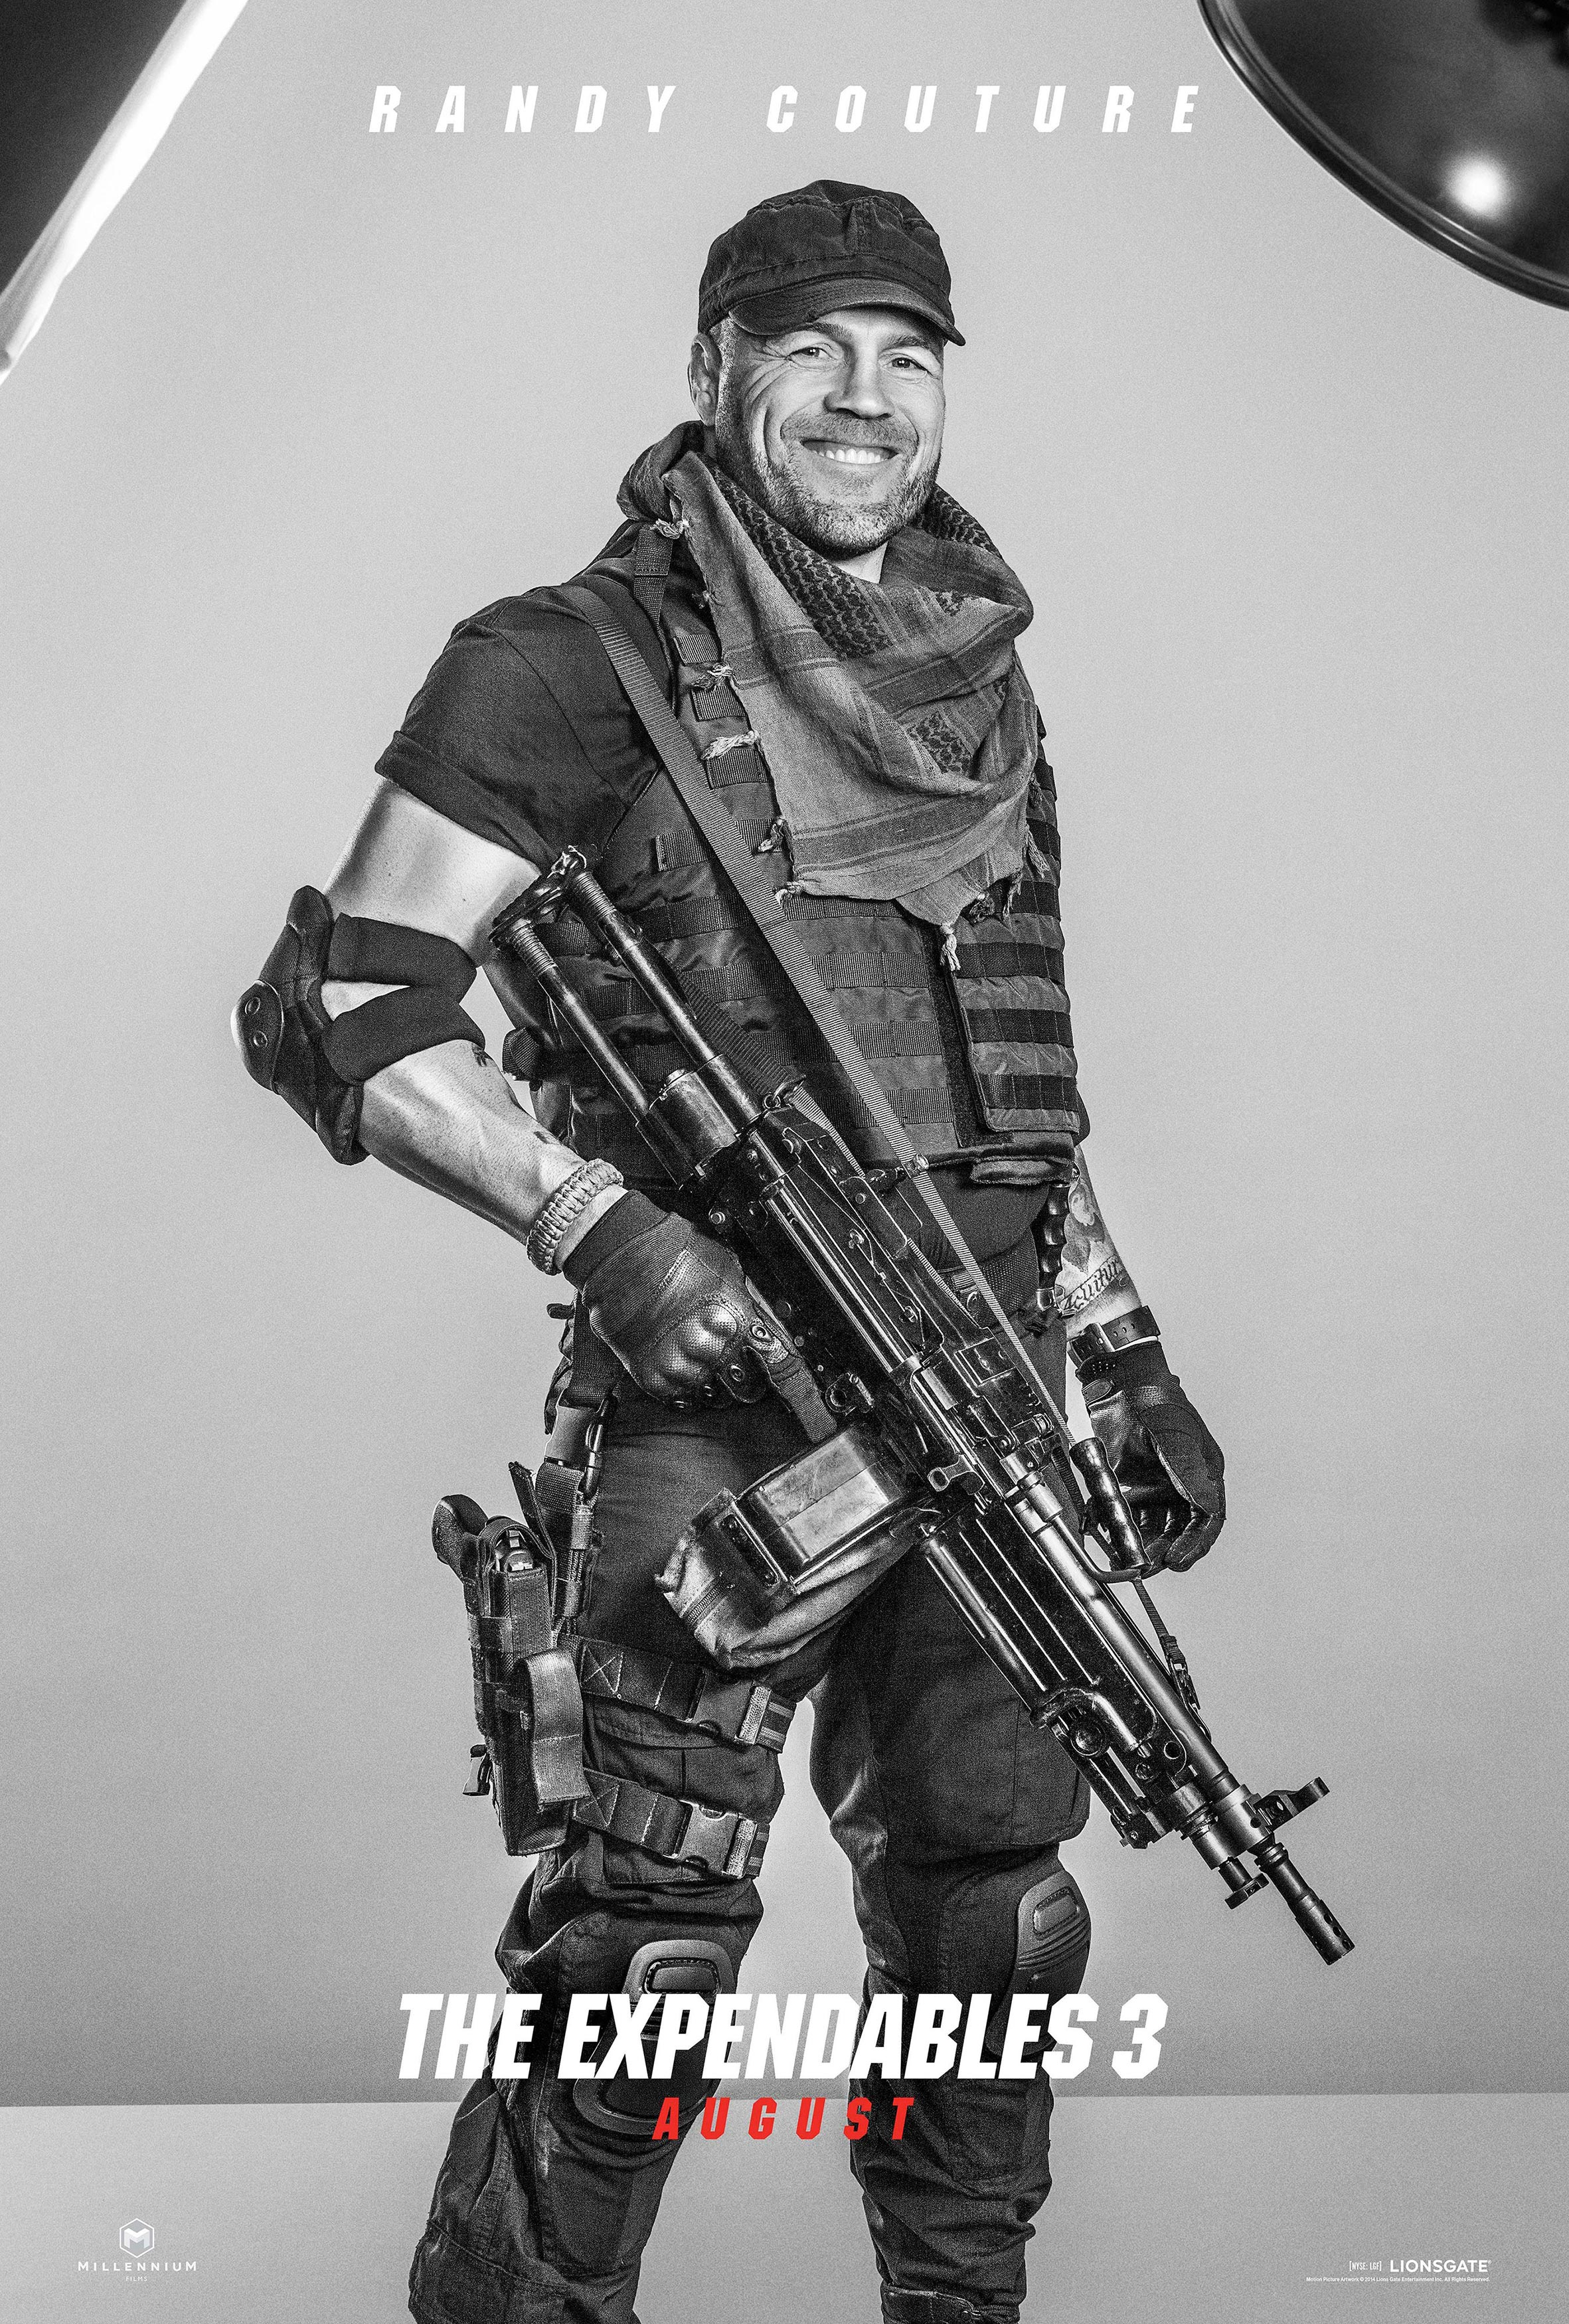 THE EXPENDABLES 3 Character Posters! (+16) - FilmoFilia